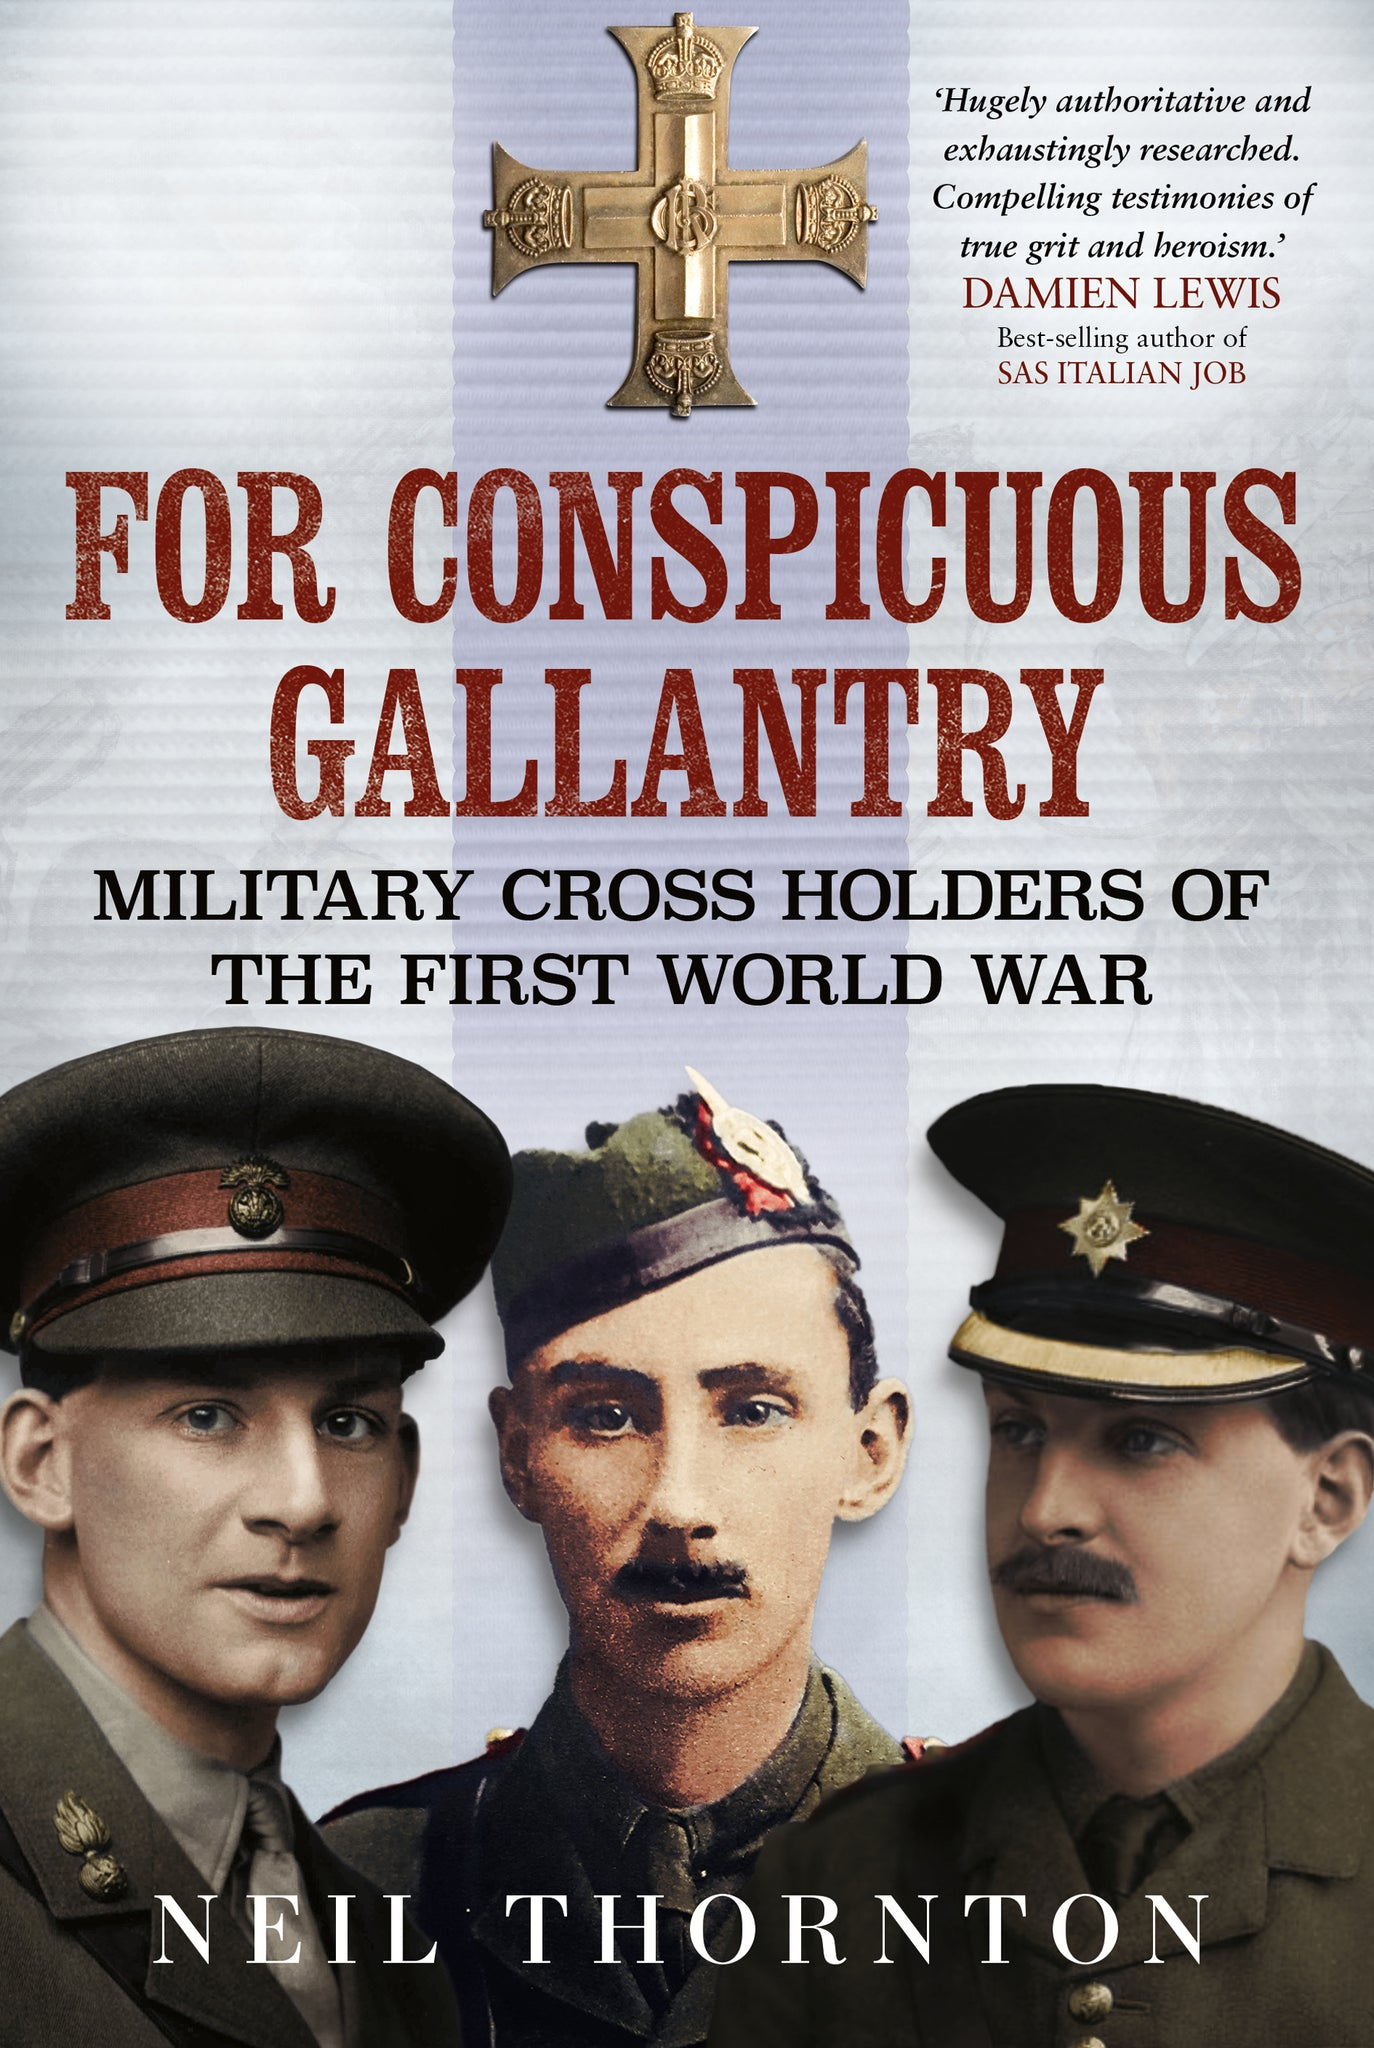 For Conspicuous Gallantry: Military Cross Holders of the First World War